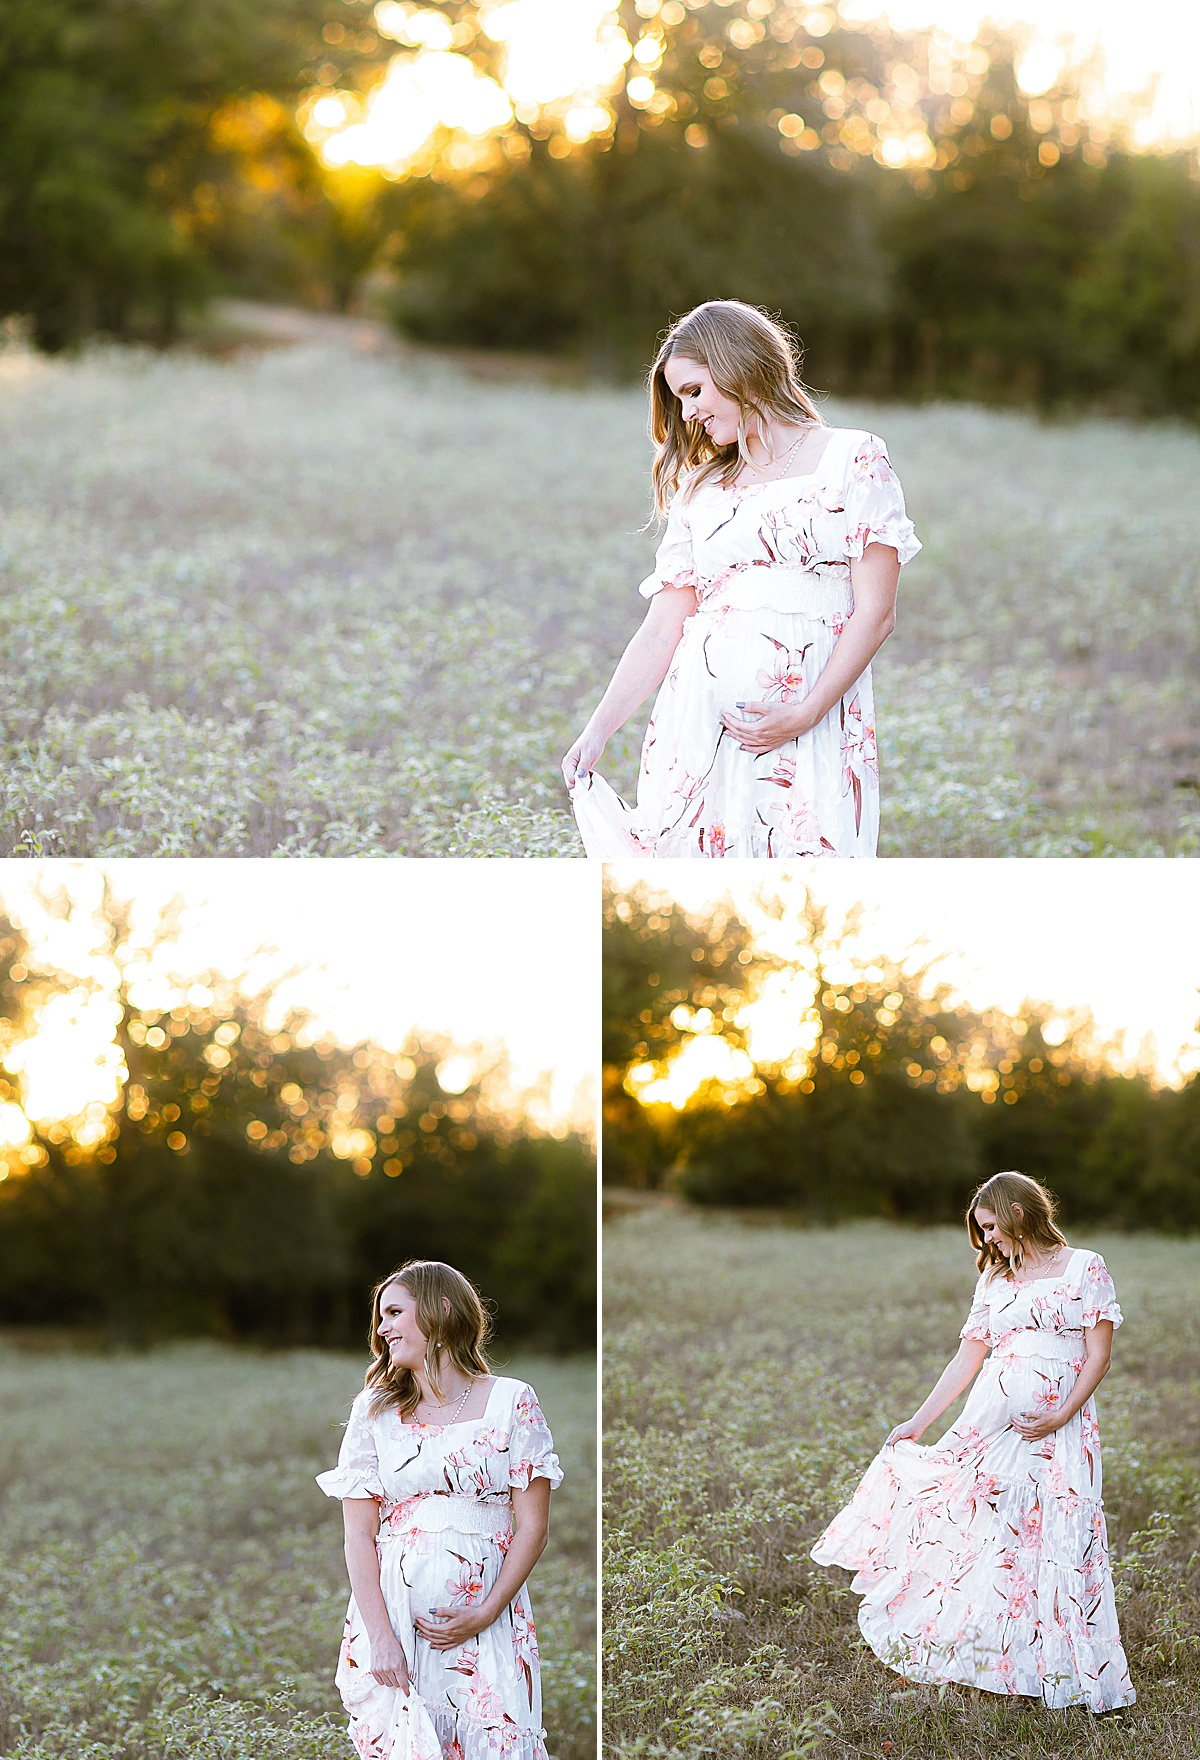 maternity-photo-session-lavernia-texas-carly-barton-photography_0009.jpg